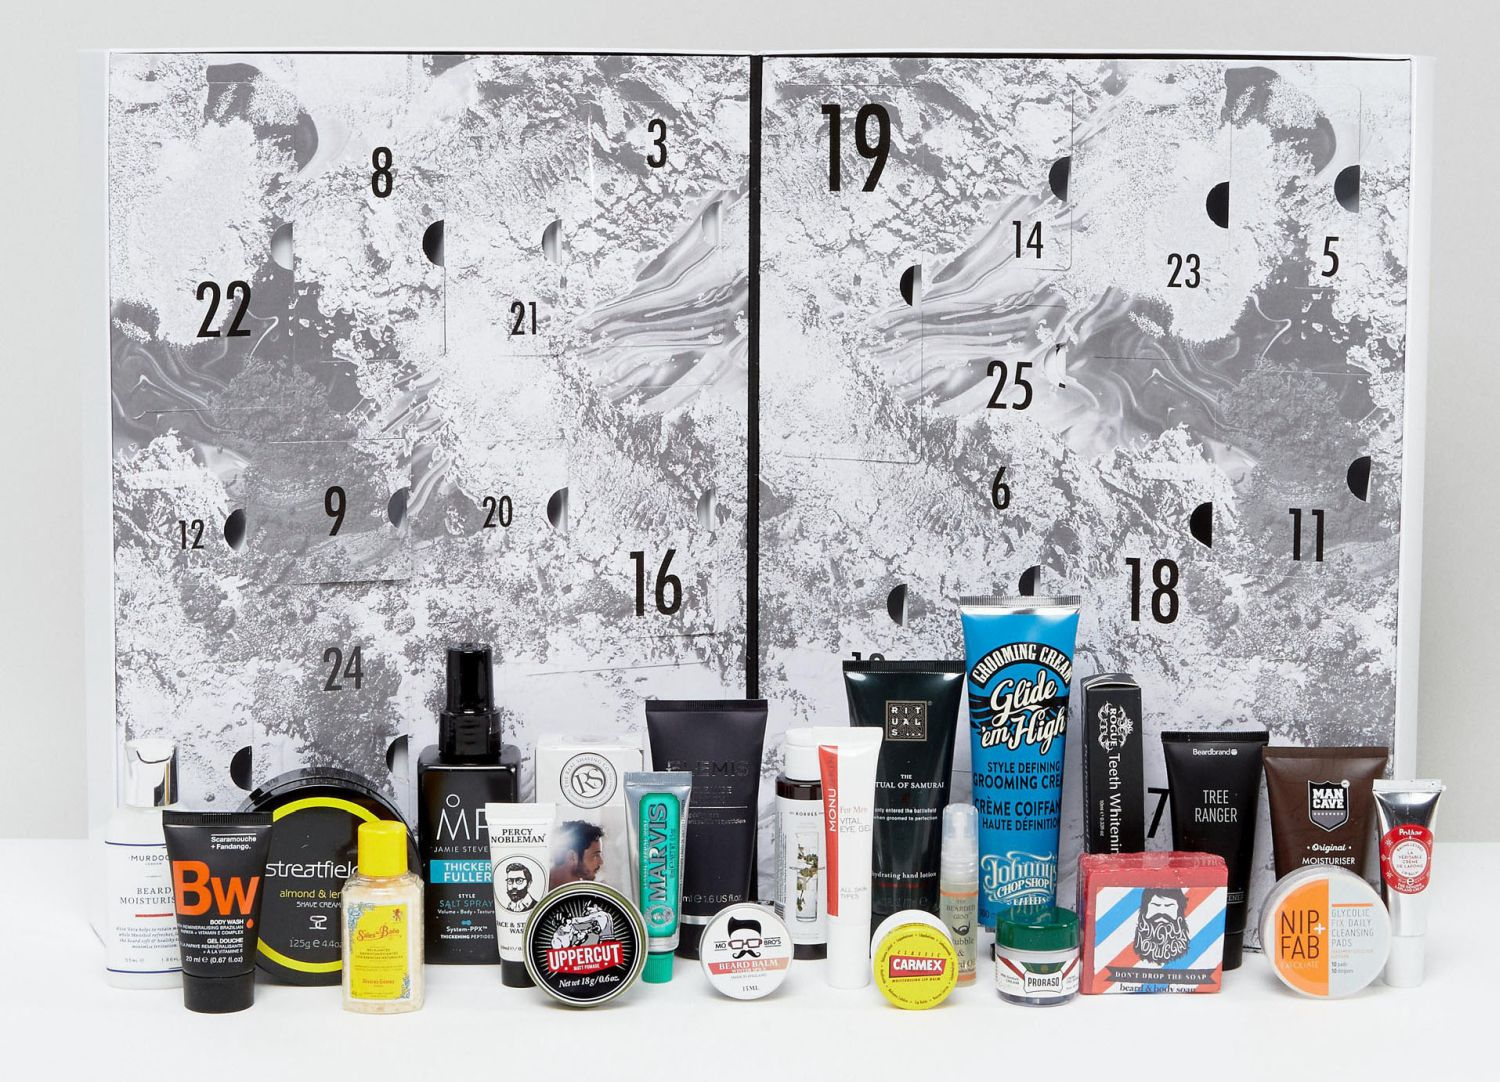 The ASOS Grooming Calendar